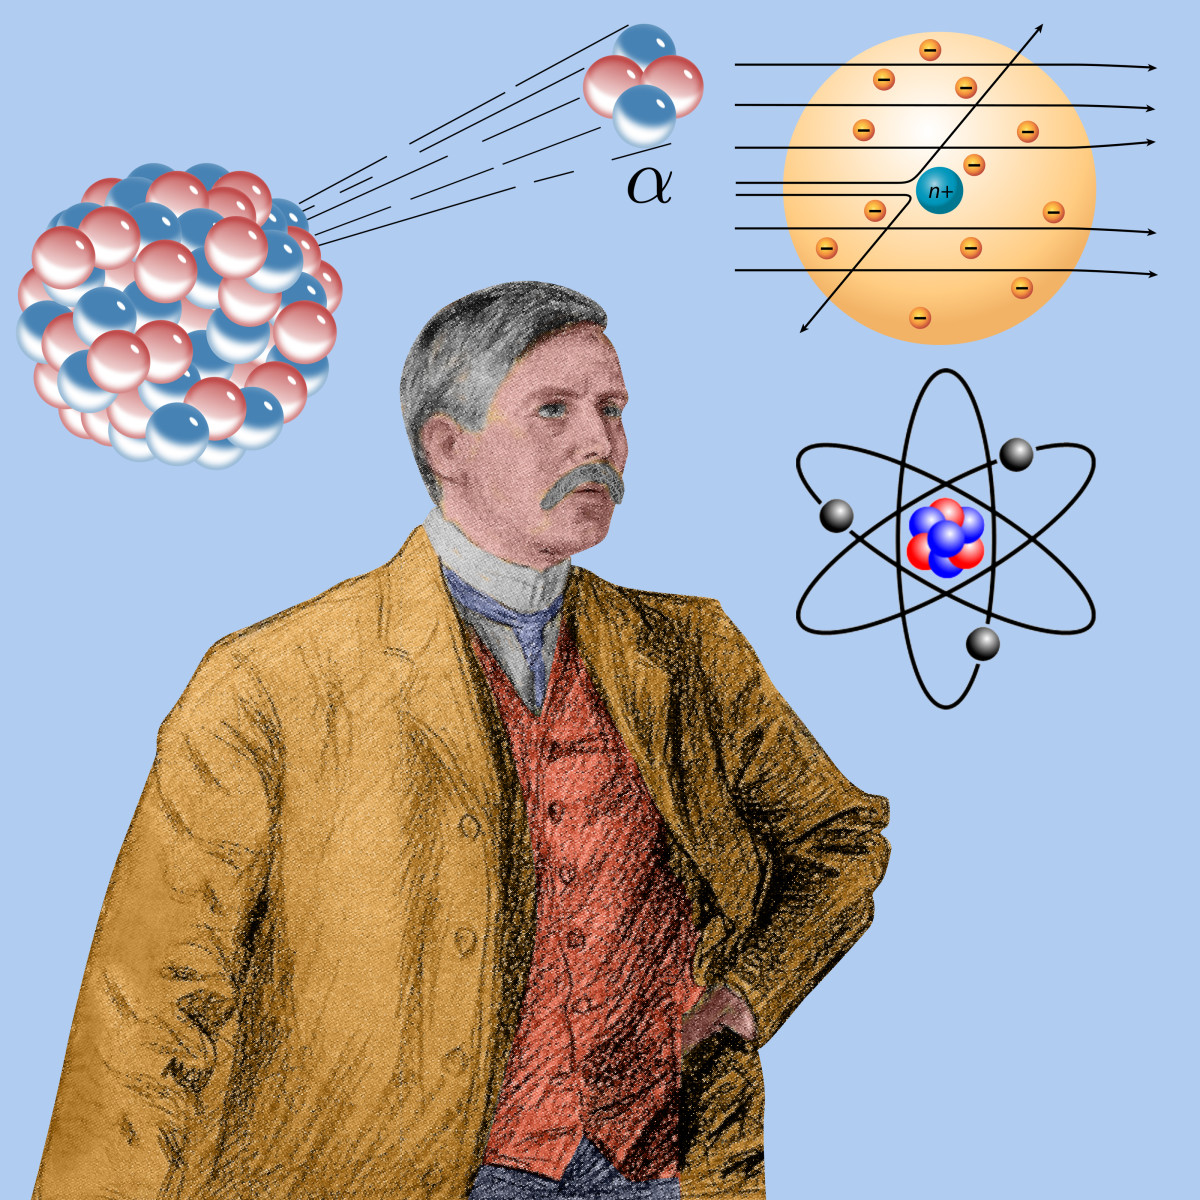 ernest-rutherford-father-of-nuclear-physics